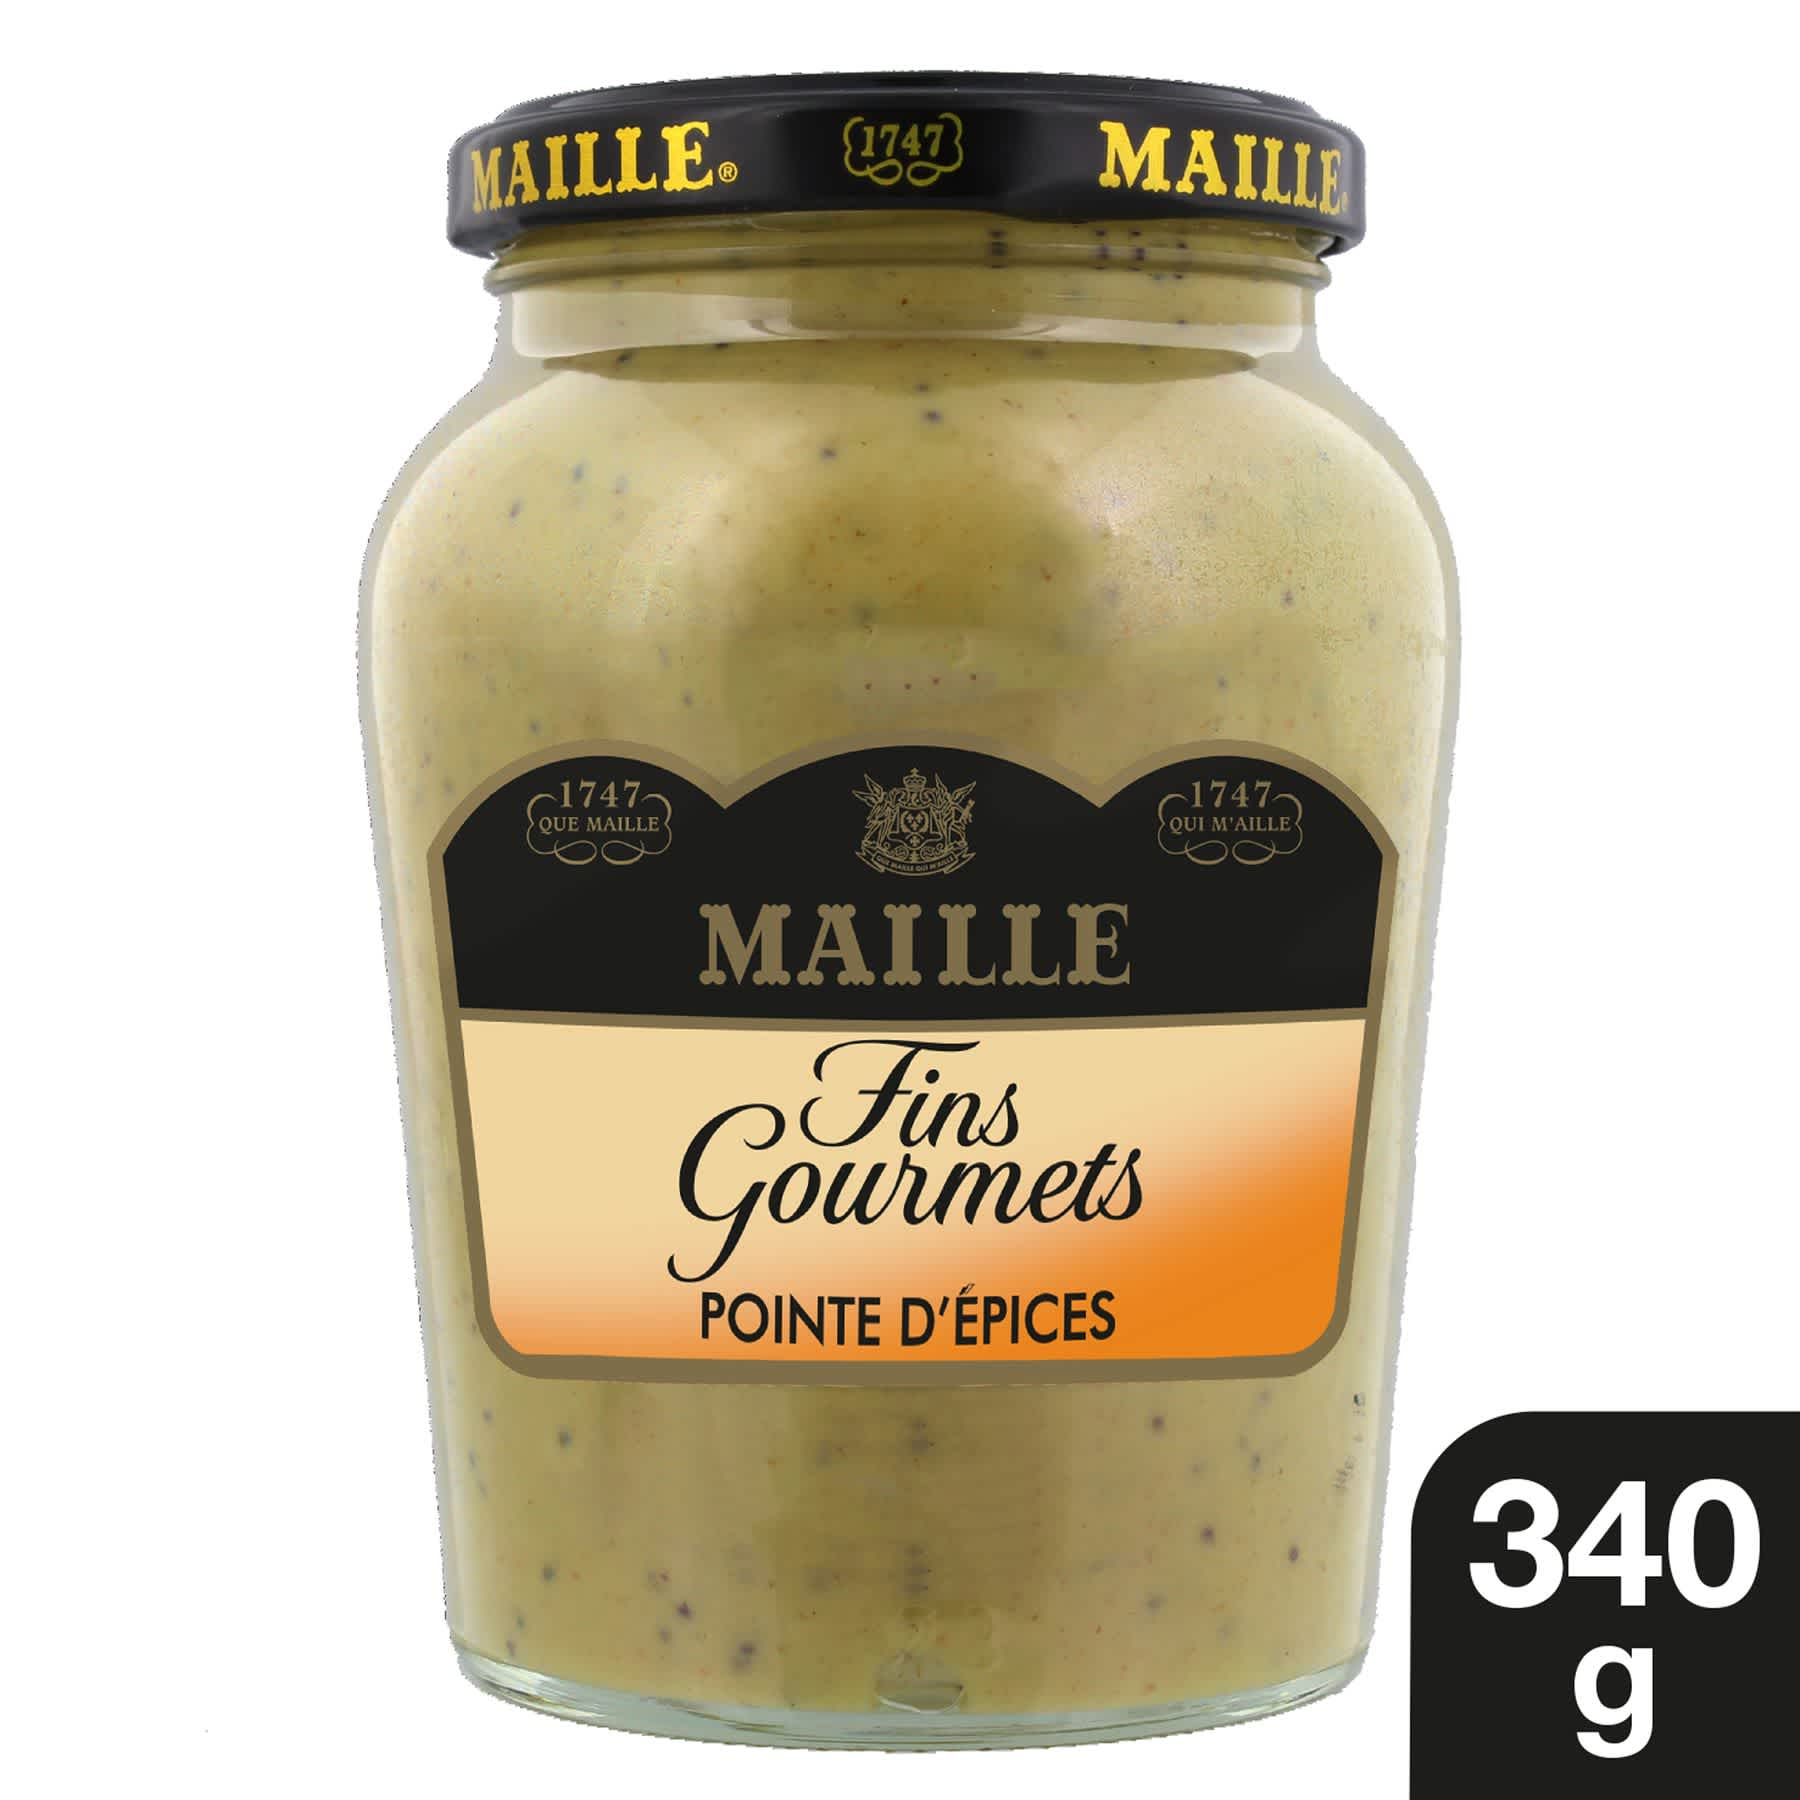 Maille Specialite a la Moutarde Fins Gourmets Pointe d'Epices Bocal 340g